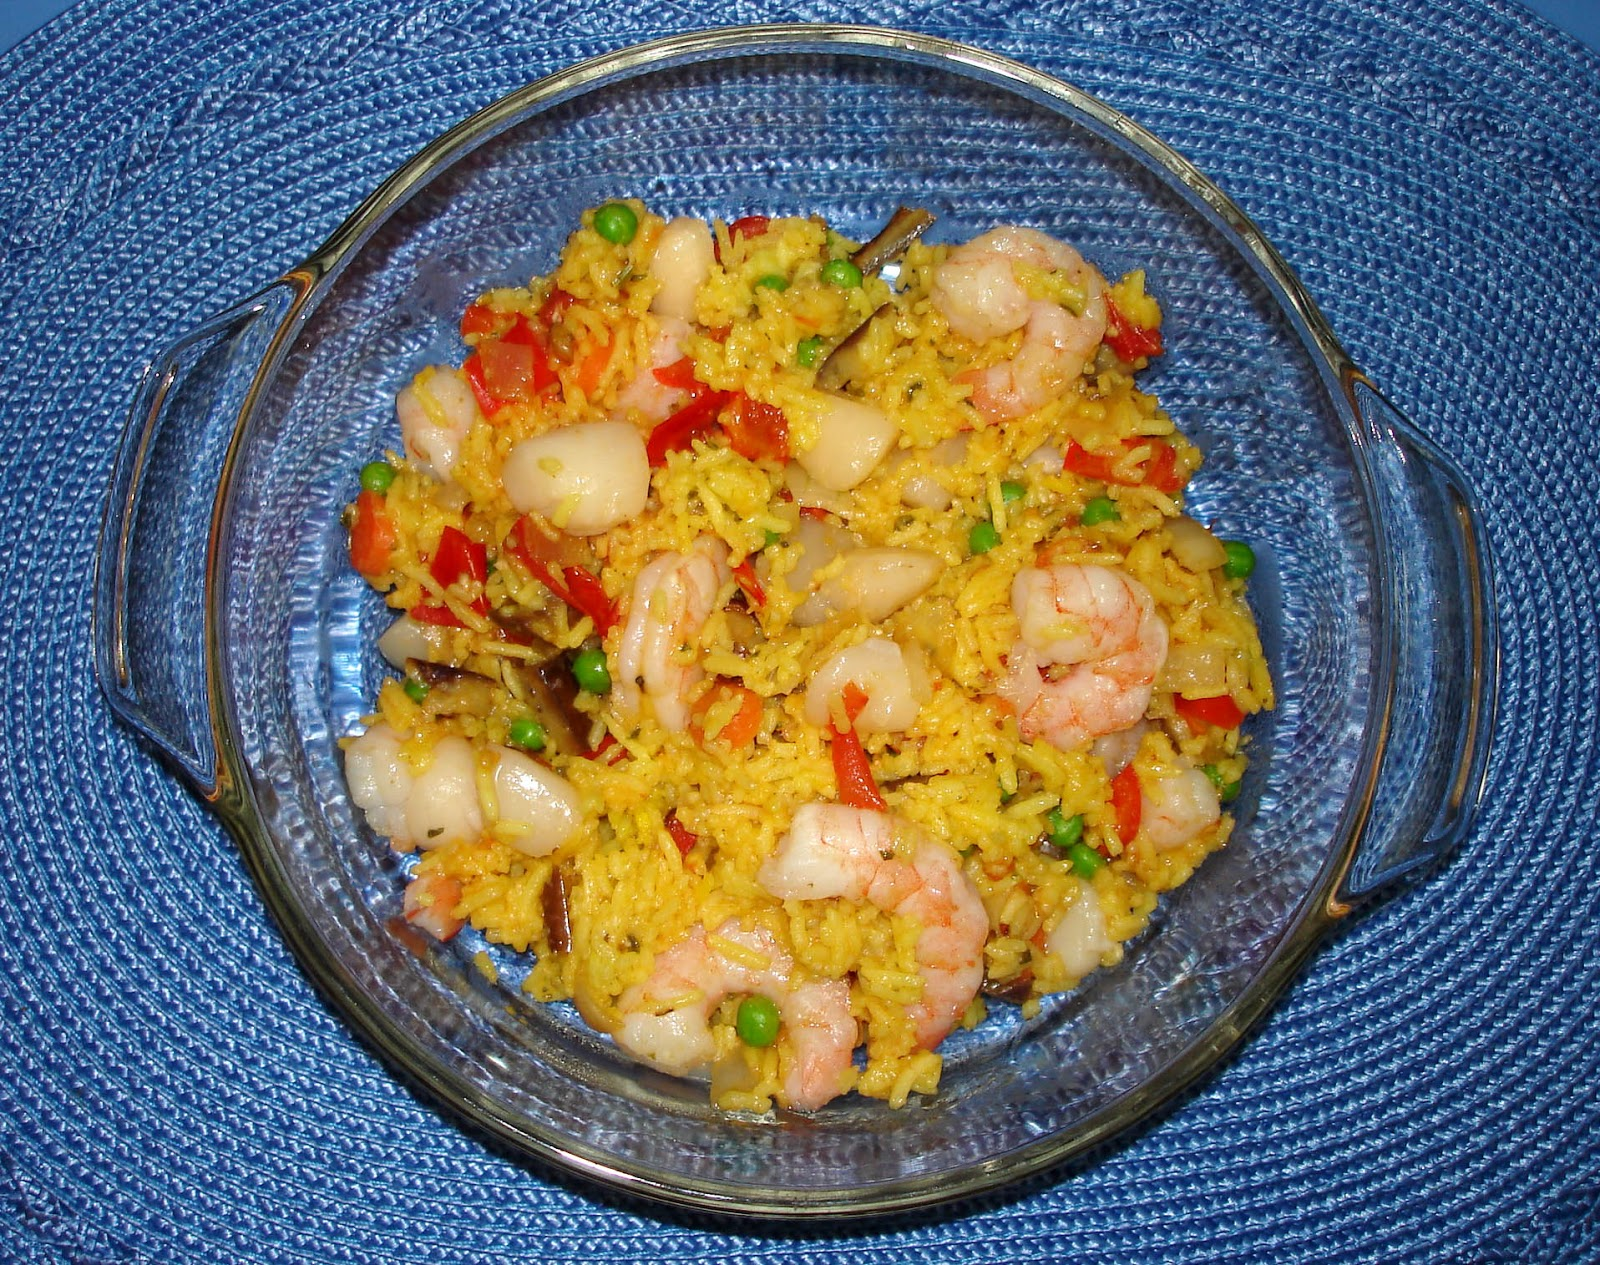 Let them eat bread!: Shrimp and Scallop Paella